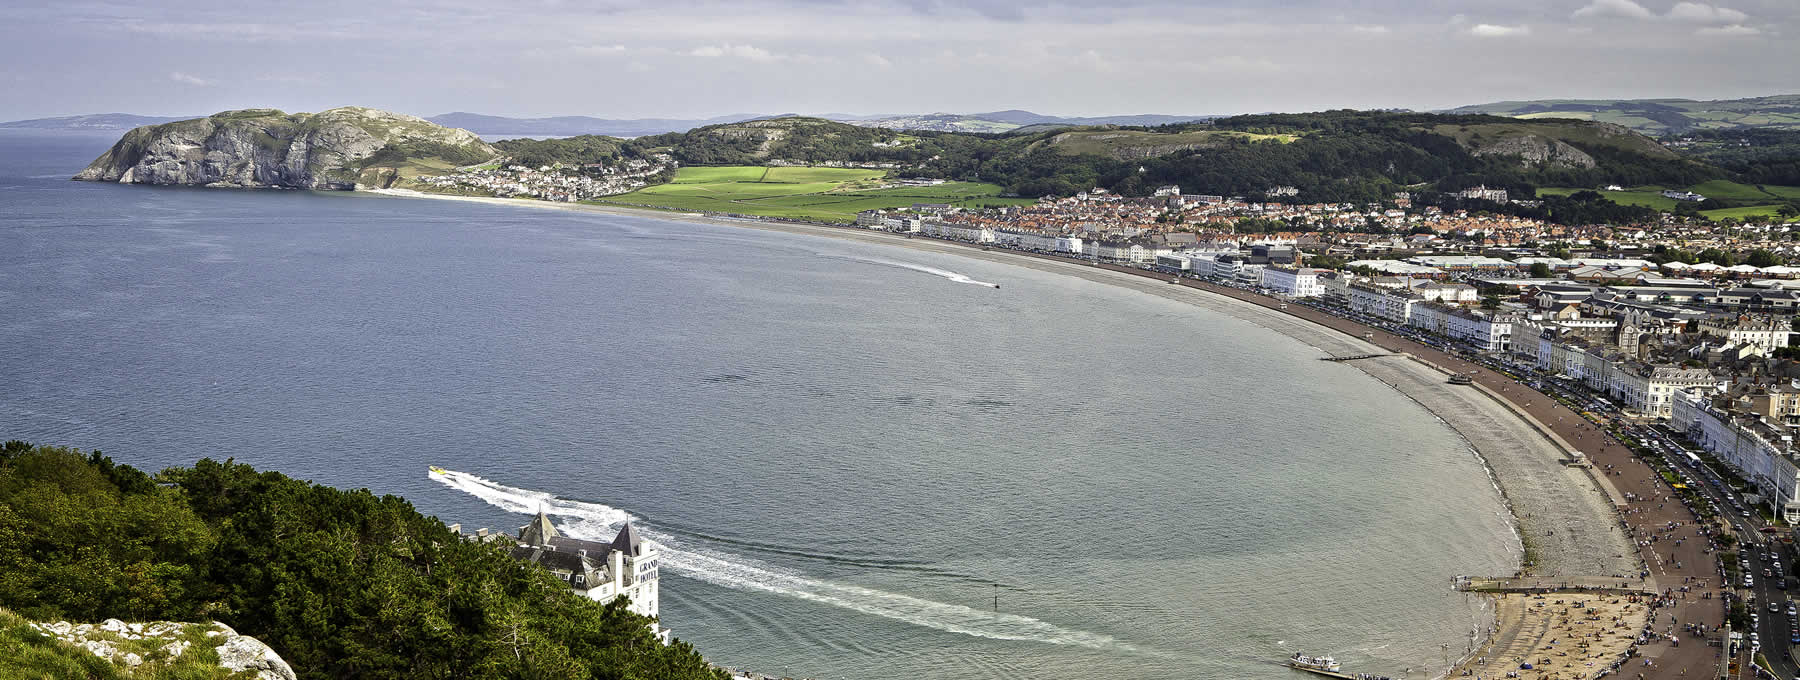 Two Llandudno Hotels Top TripAdvisor Awards!